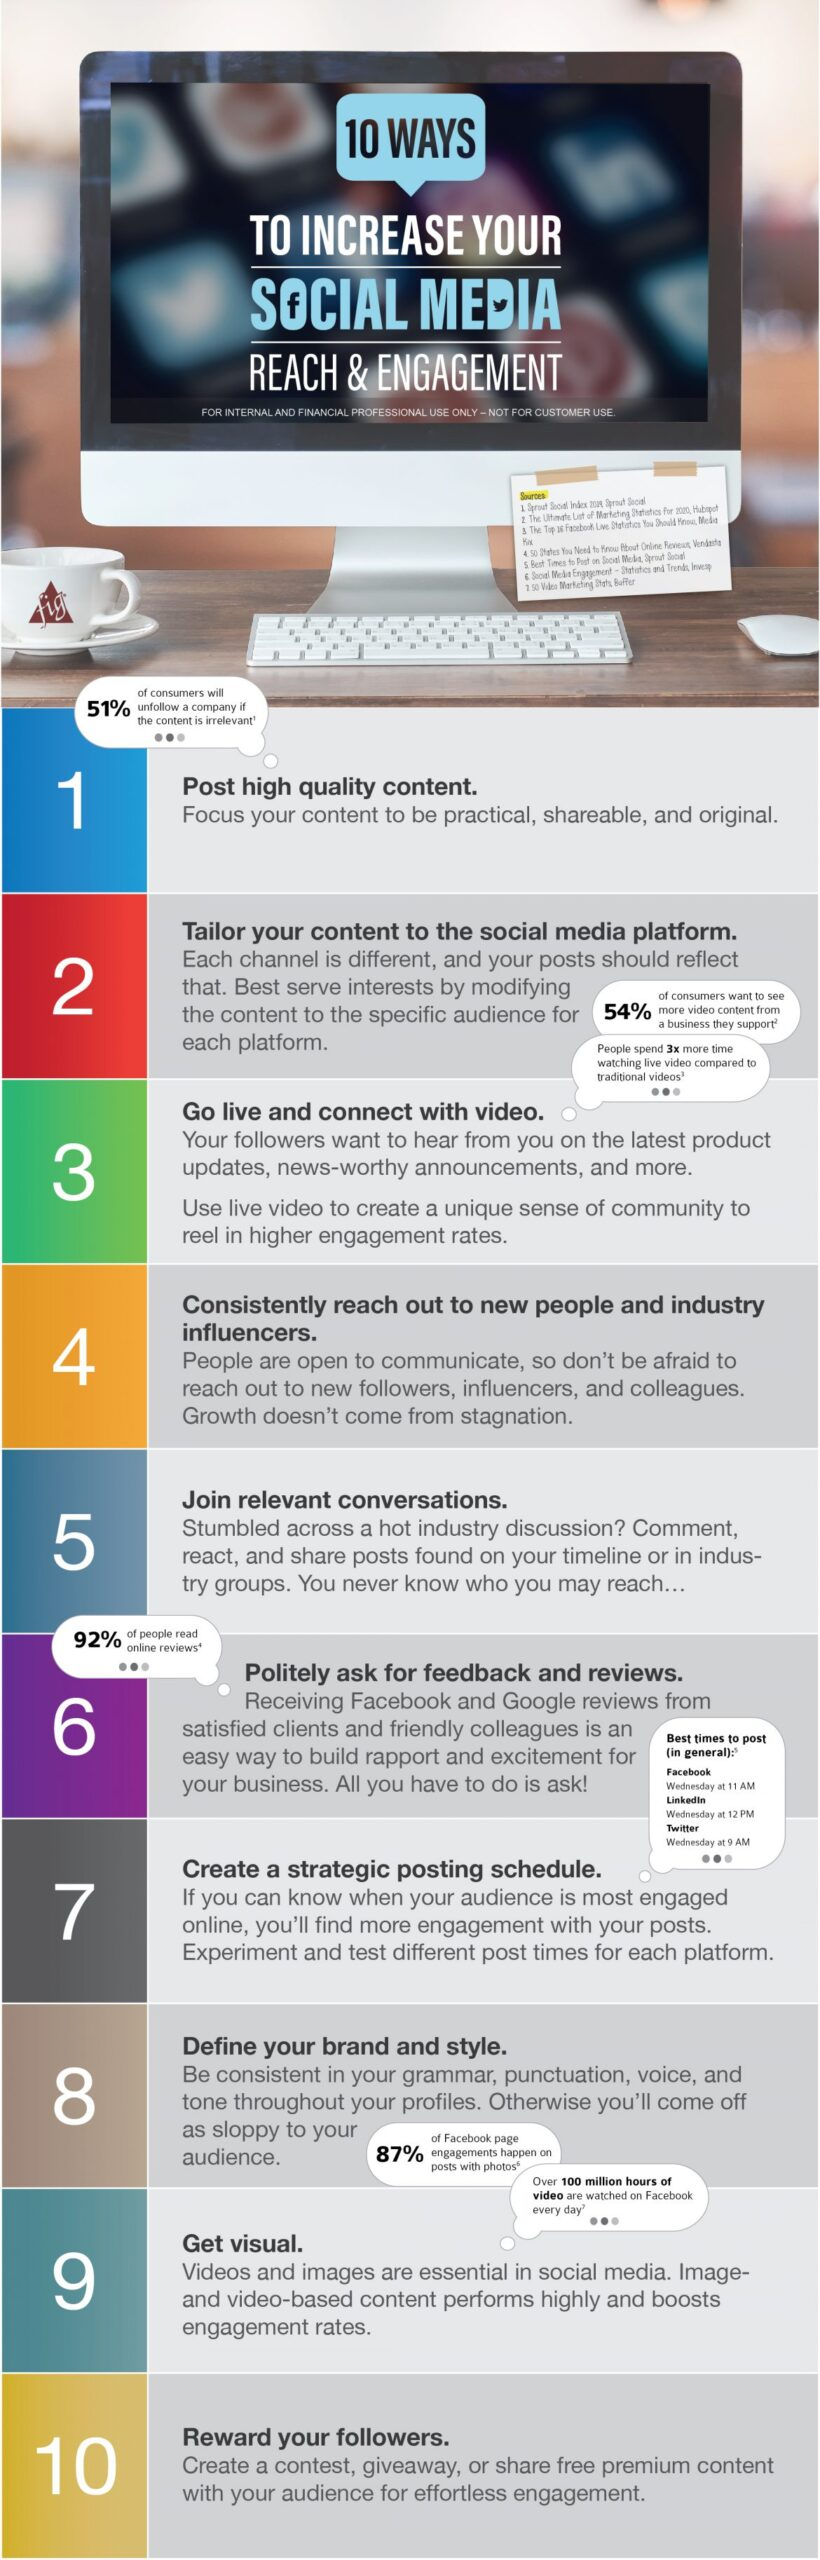 increase_reach_and_engagement_on_social_media_strategy